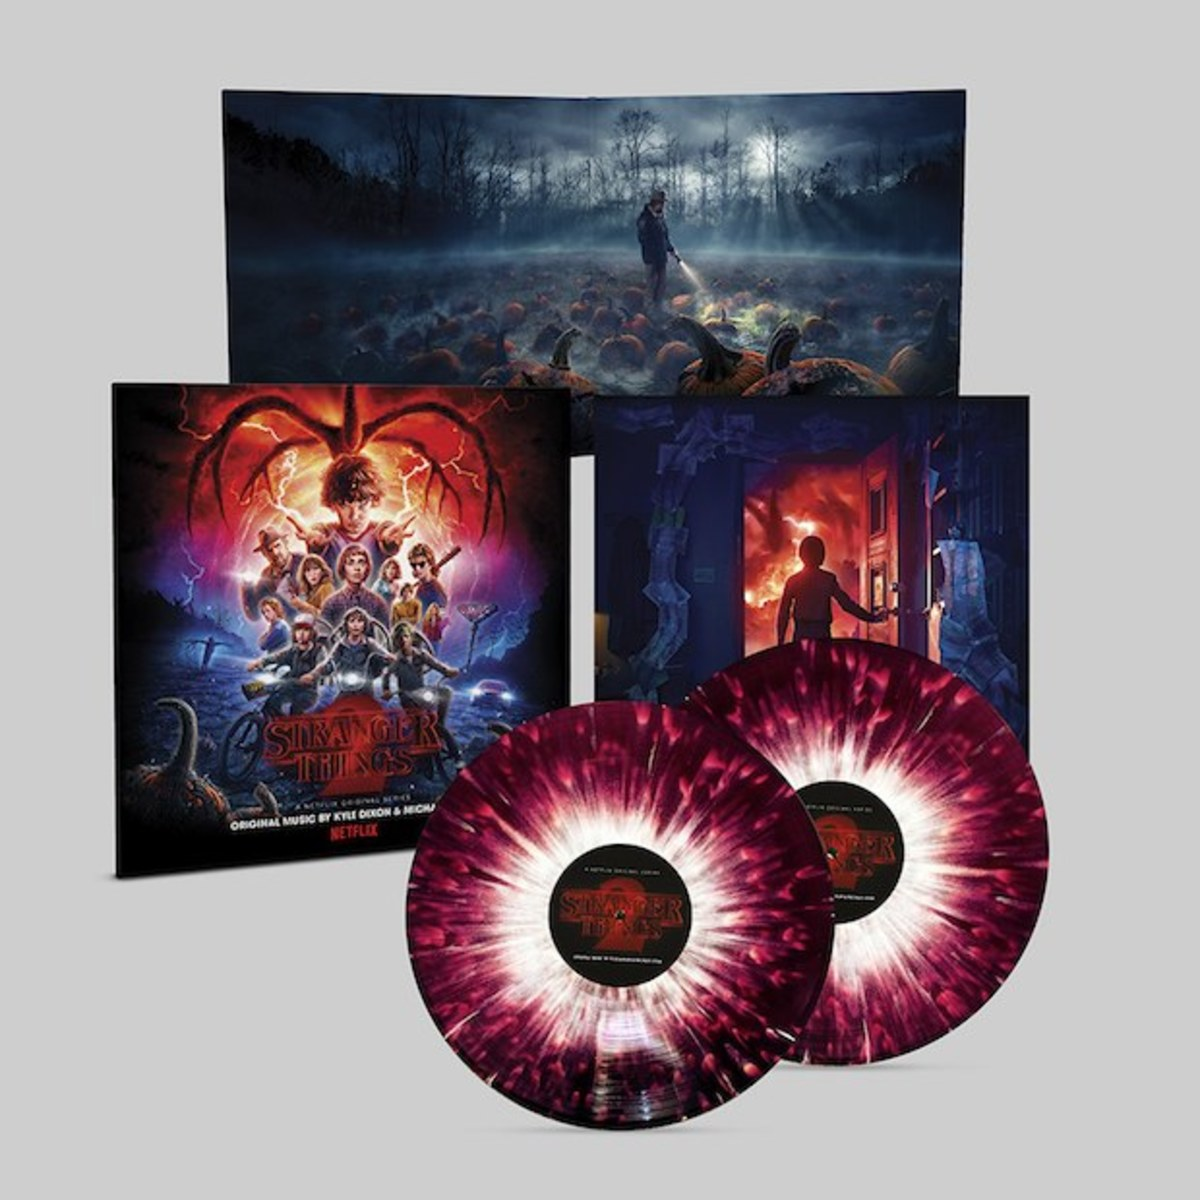 Stranger Things 2 Soundtrack Getting Incredible Vinyl Box